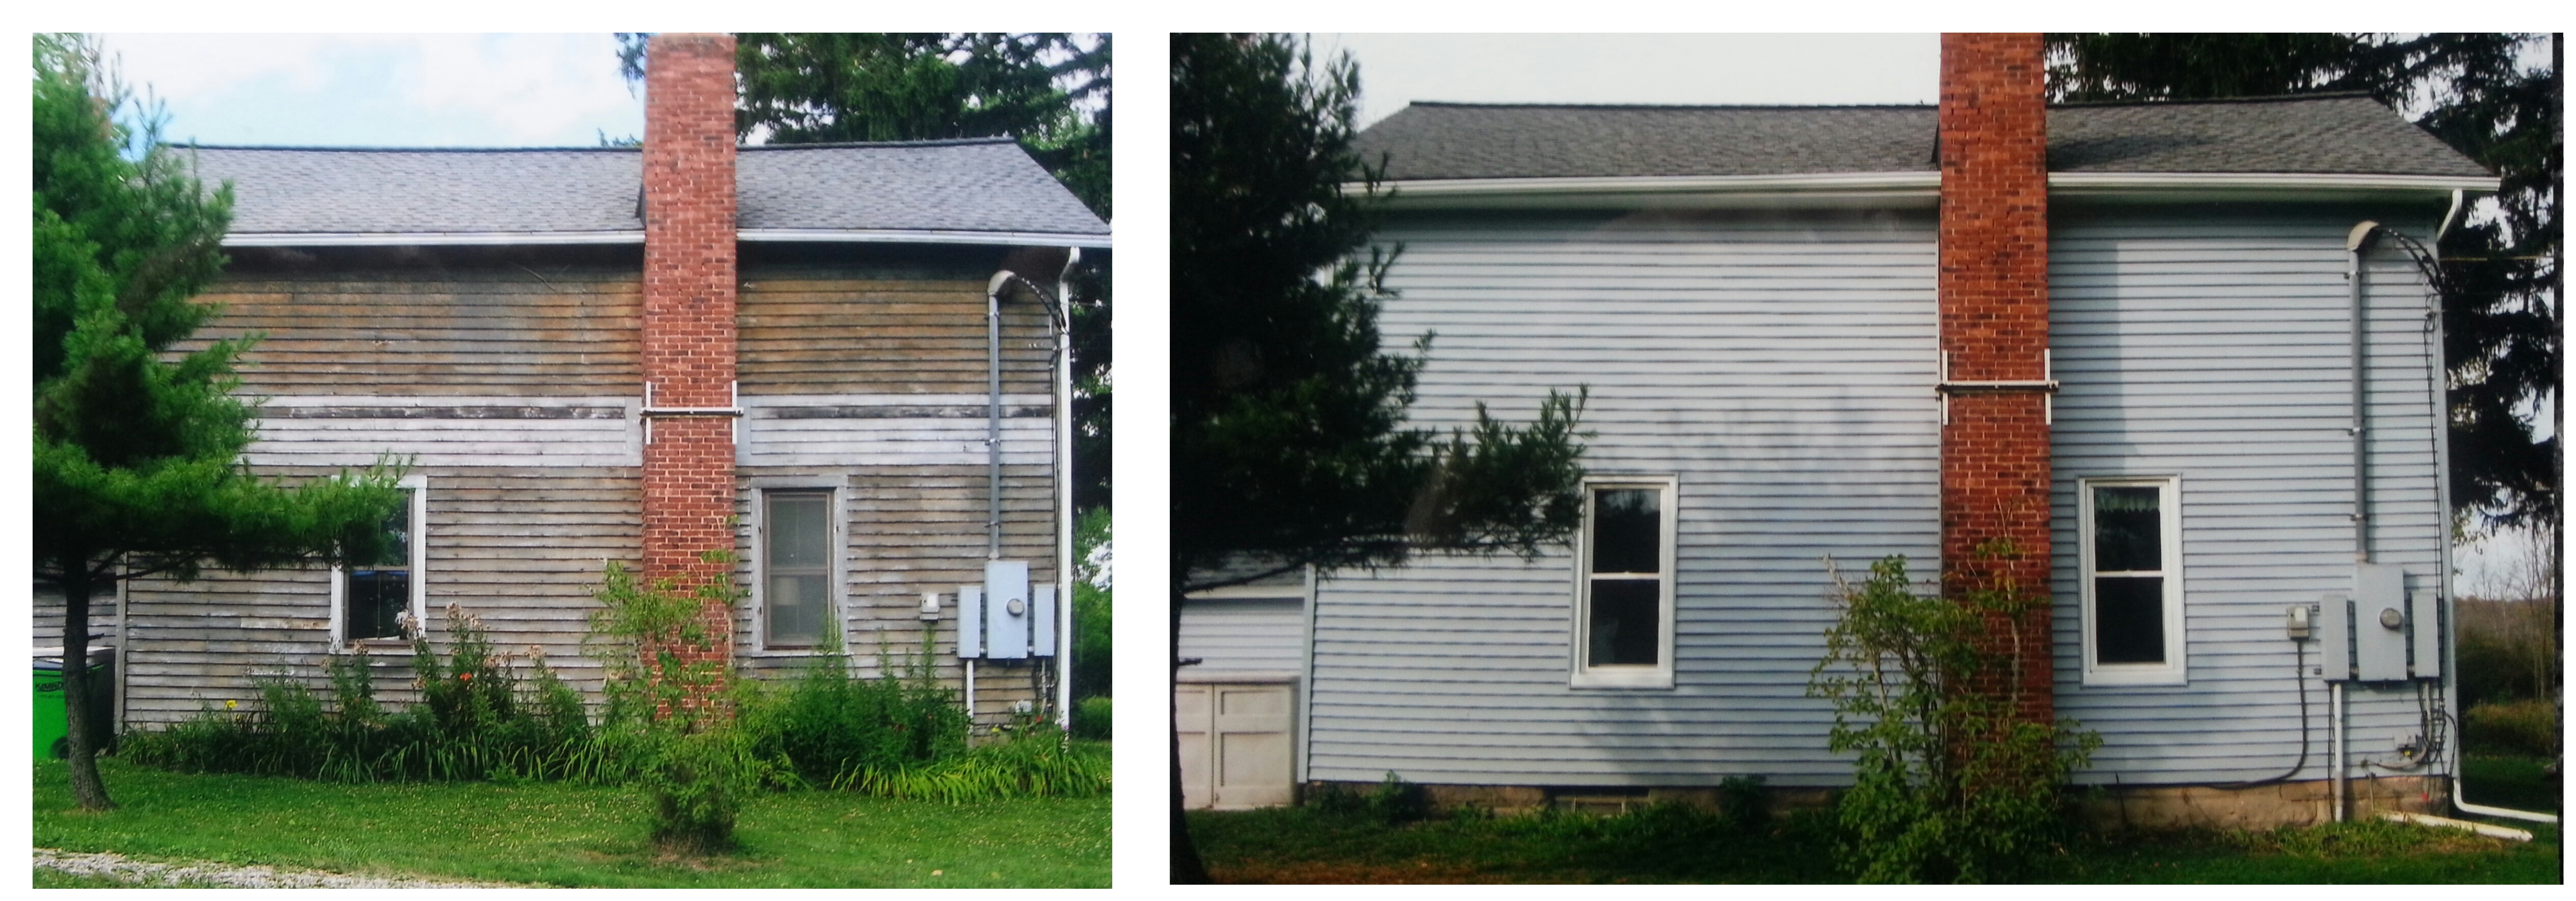 Twinsburg Siding And Double Hung Windows Before And After